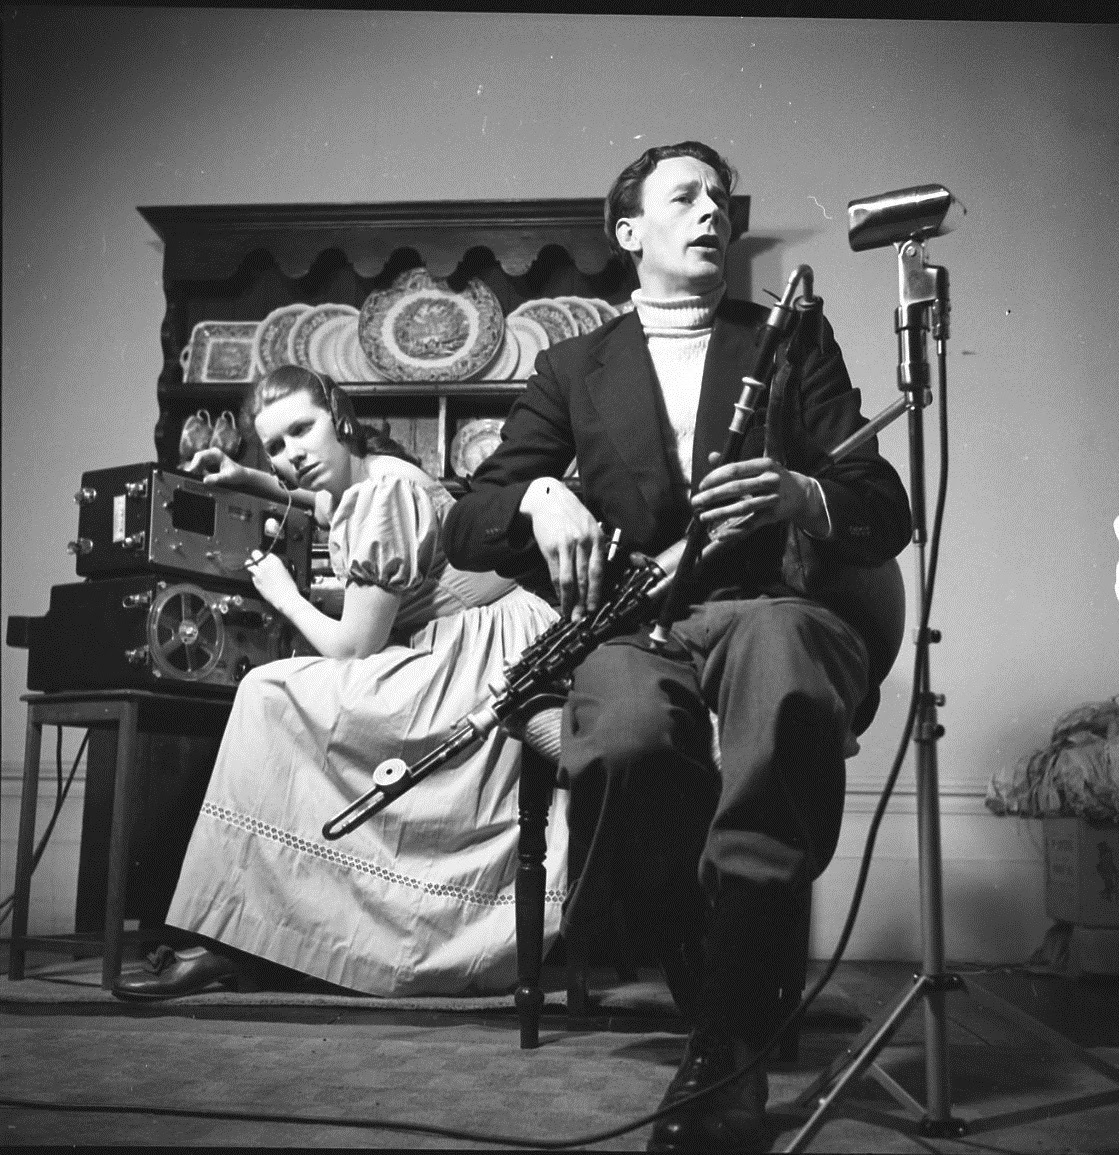 Jean Ritchie recording Seamus Ennis, March 1952 - photograph by George Pickow